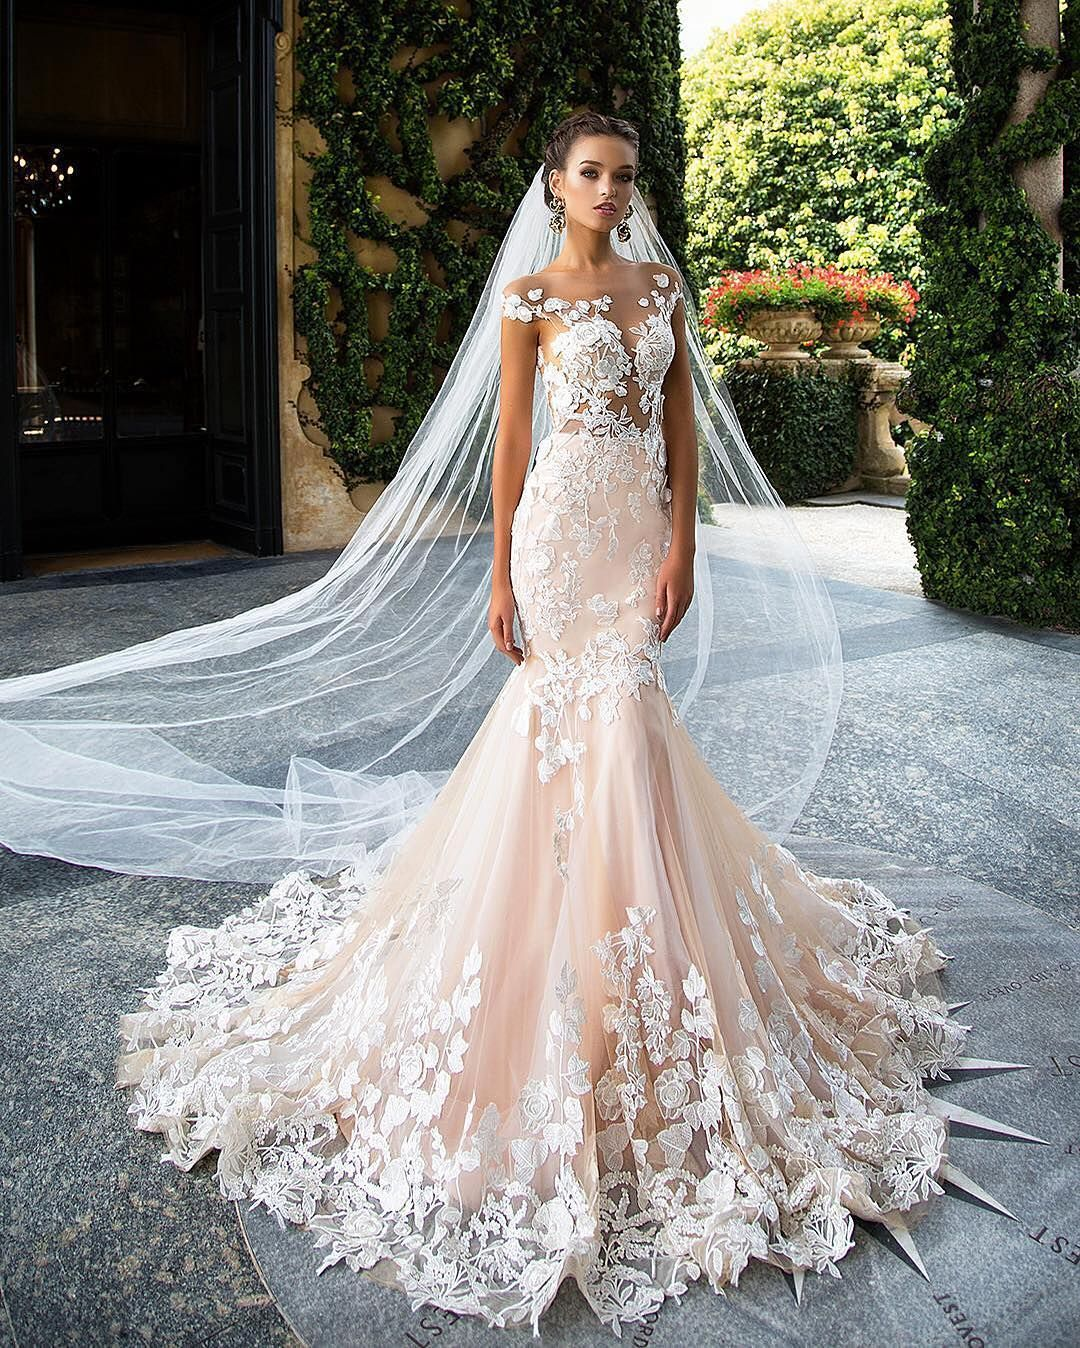 Wedding Ideas On Pinterest: Start Your Luxury Wedding Dress Search With This Pinterest